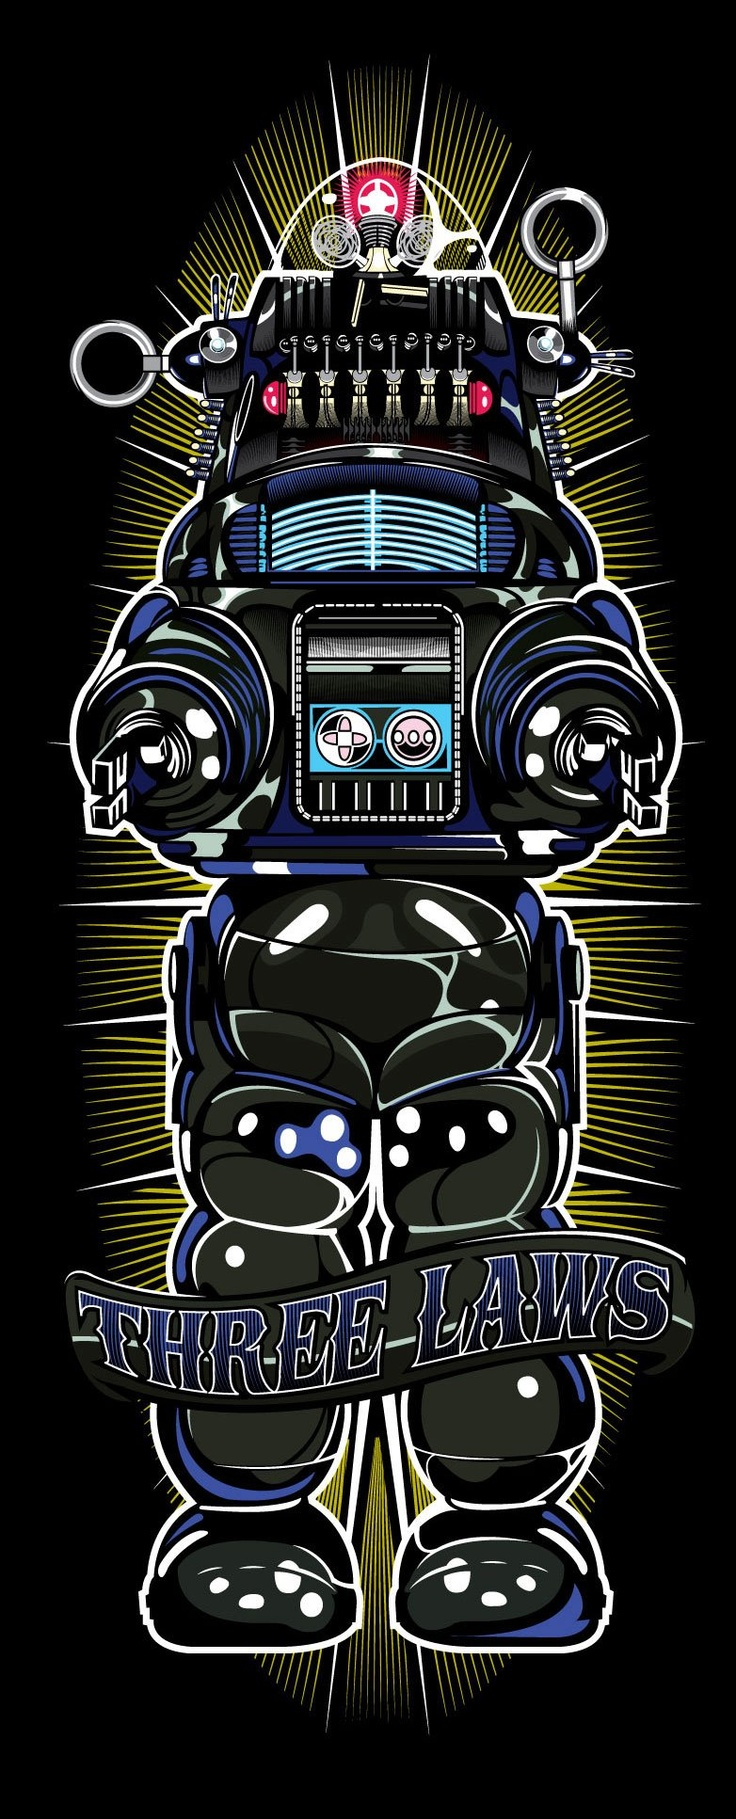 Robby the Robot - Three Laws by Samuel Ho